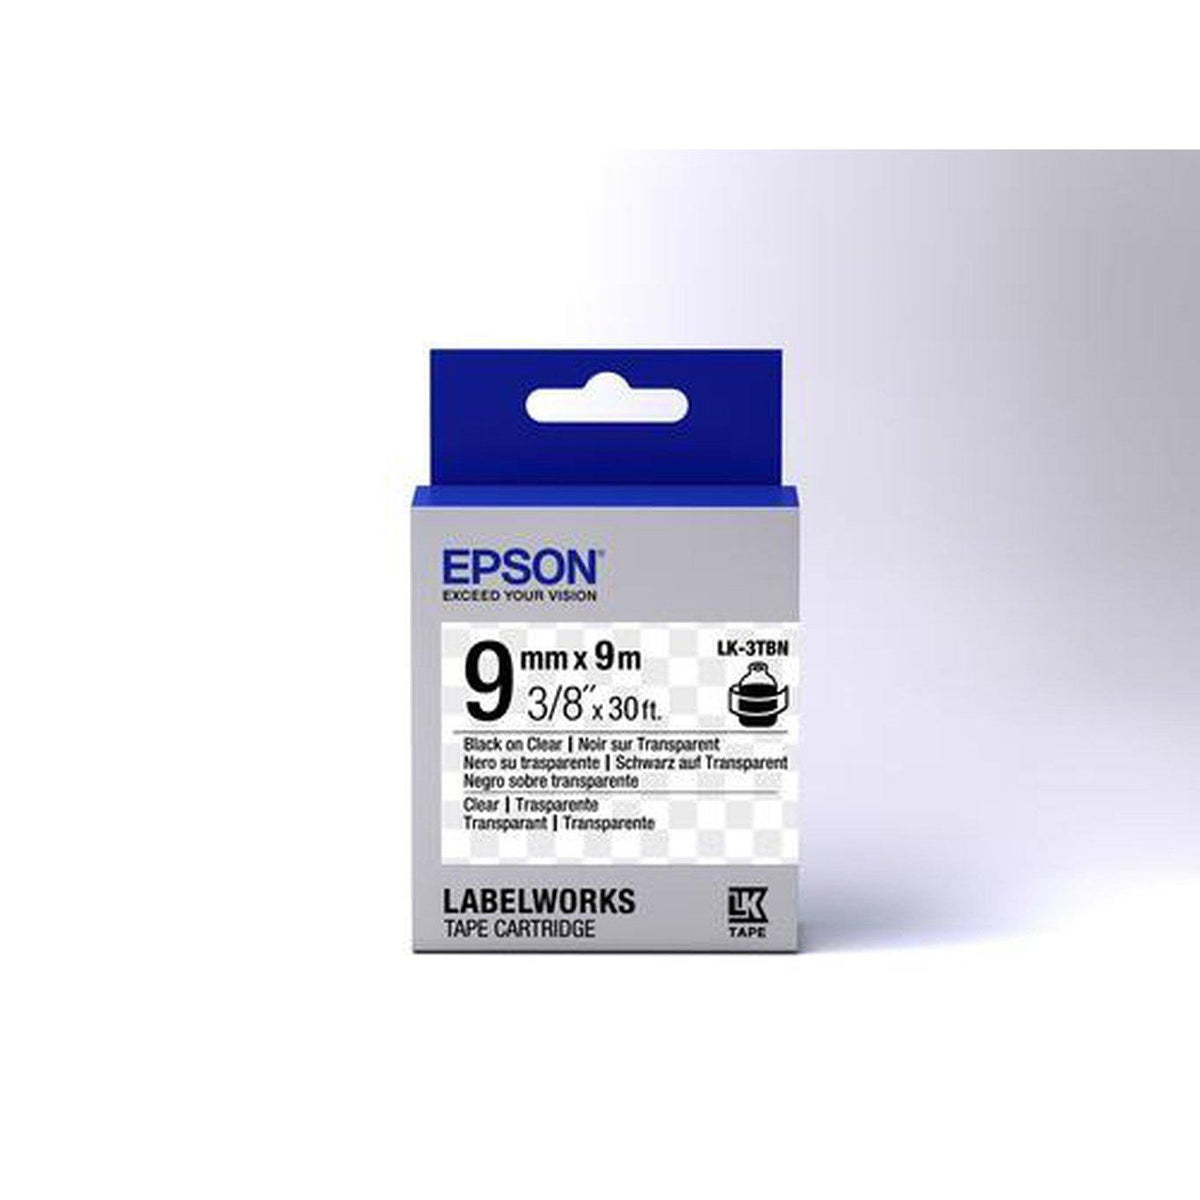 Epson Label Cartridge Transparent LK-3TBN Clear Black on Clear 9mm x 9m | C53S653004